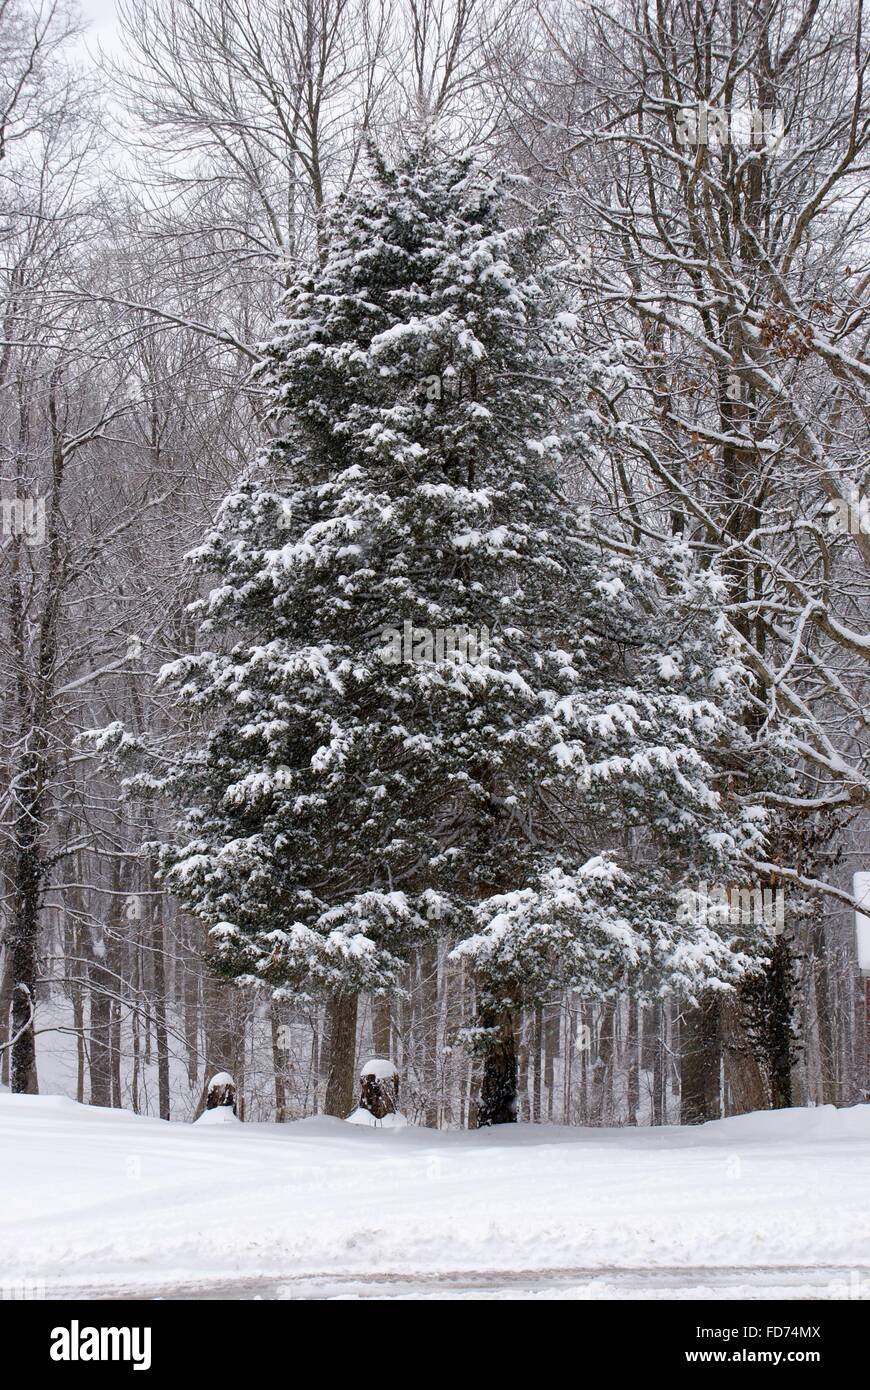 Snow on the evergreen trees sitting among bare trees in the woods. - Stock Image